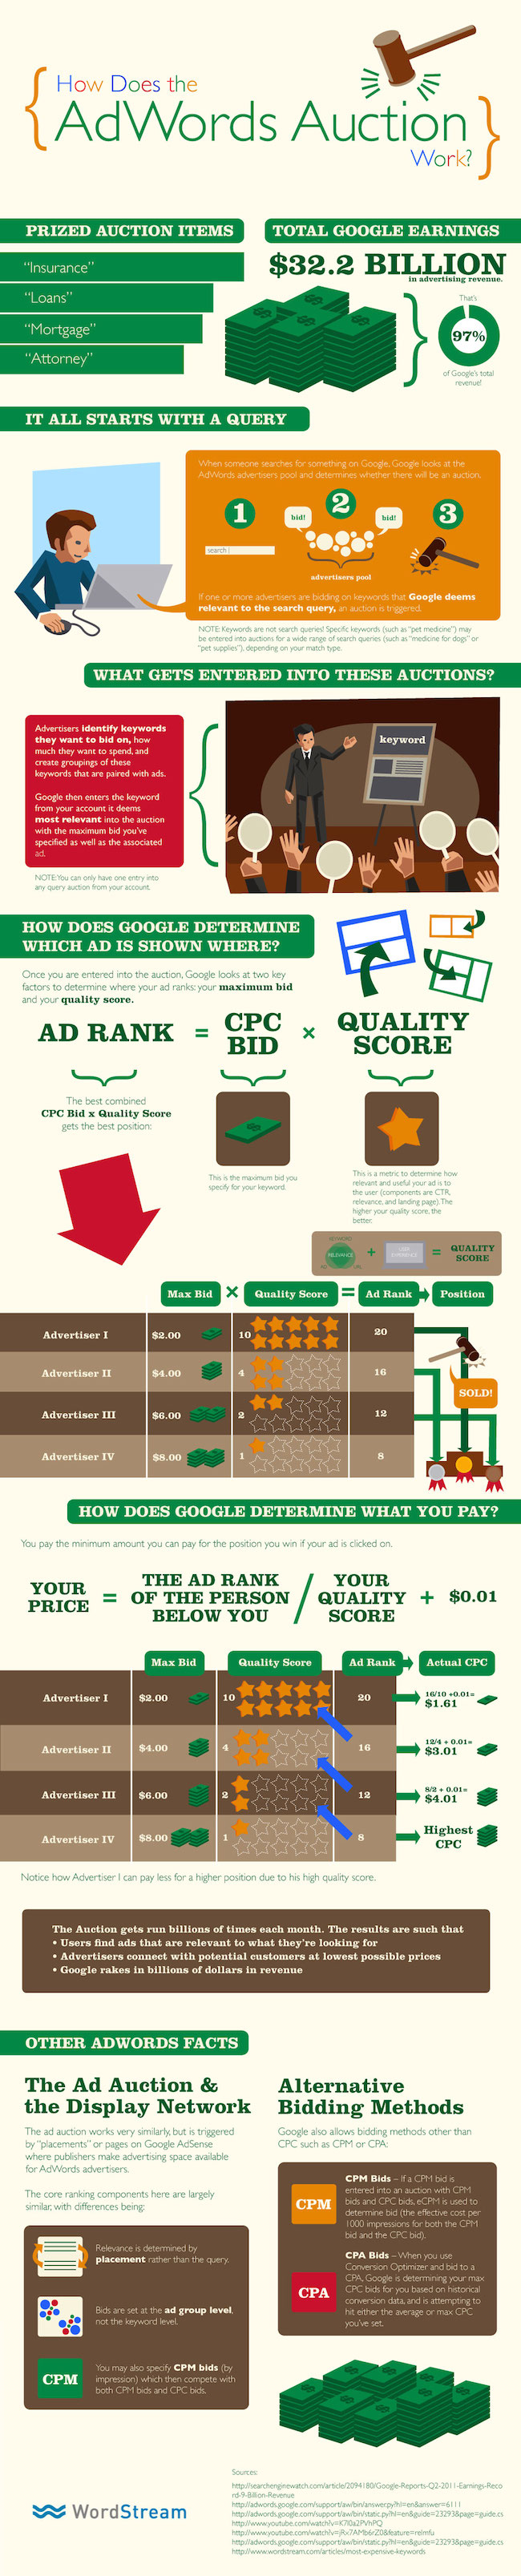 [Infografik] Wie funktioniert Google AdWords